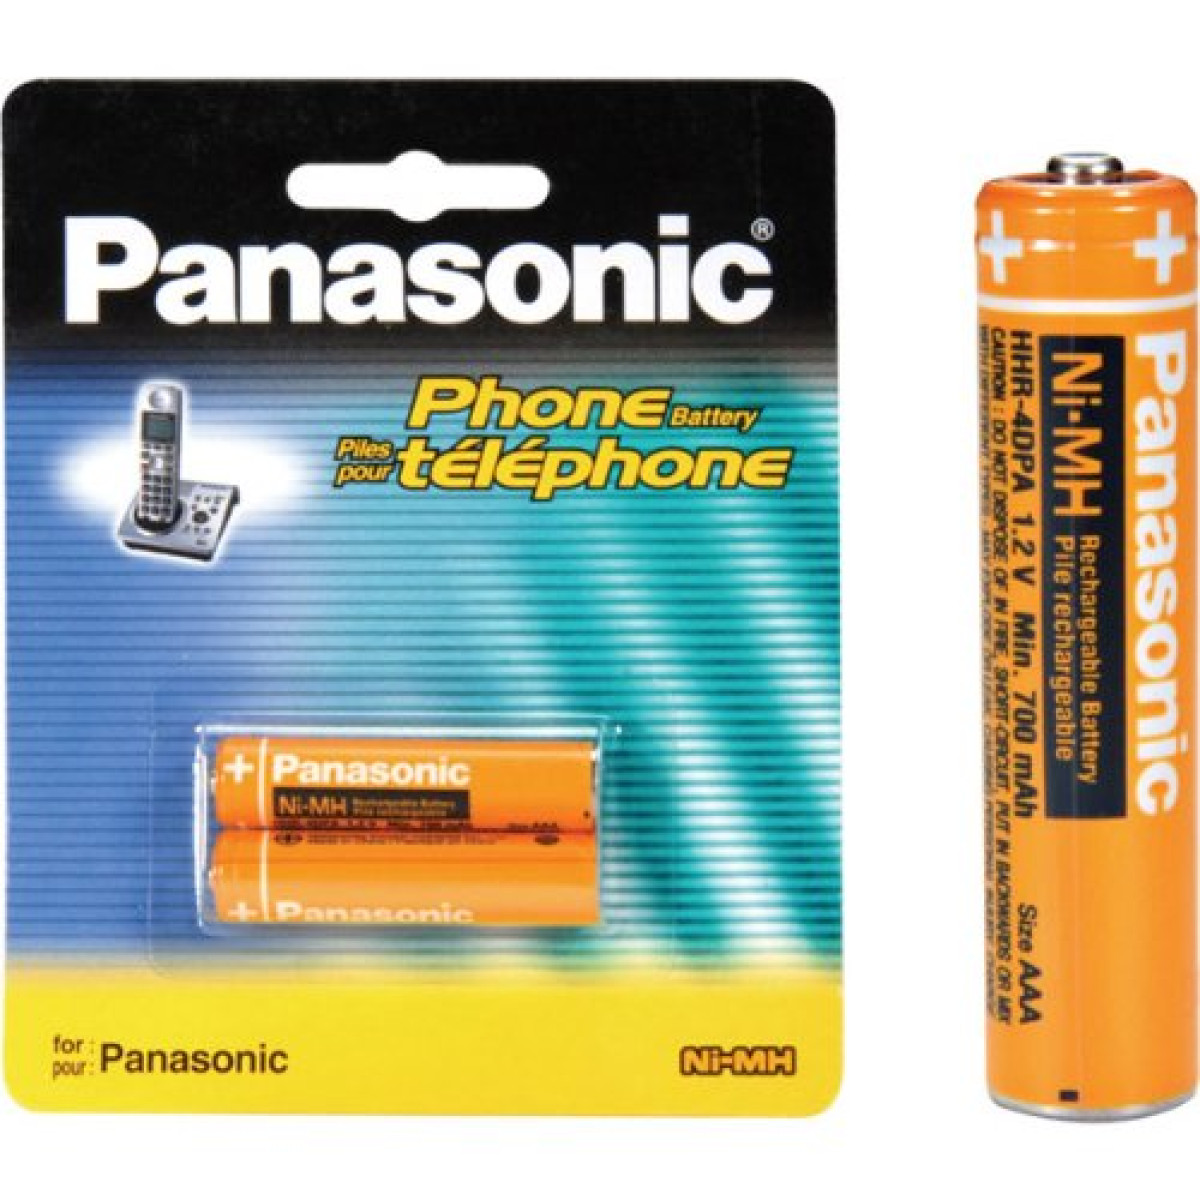 Panasonic Nimh Aaa Rechargeable Battery For Cordless Phones